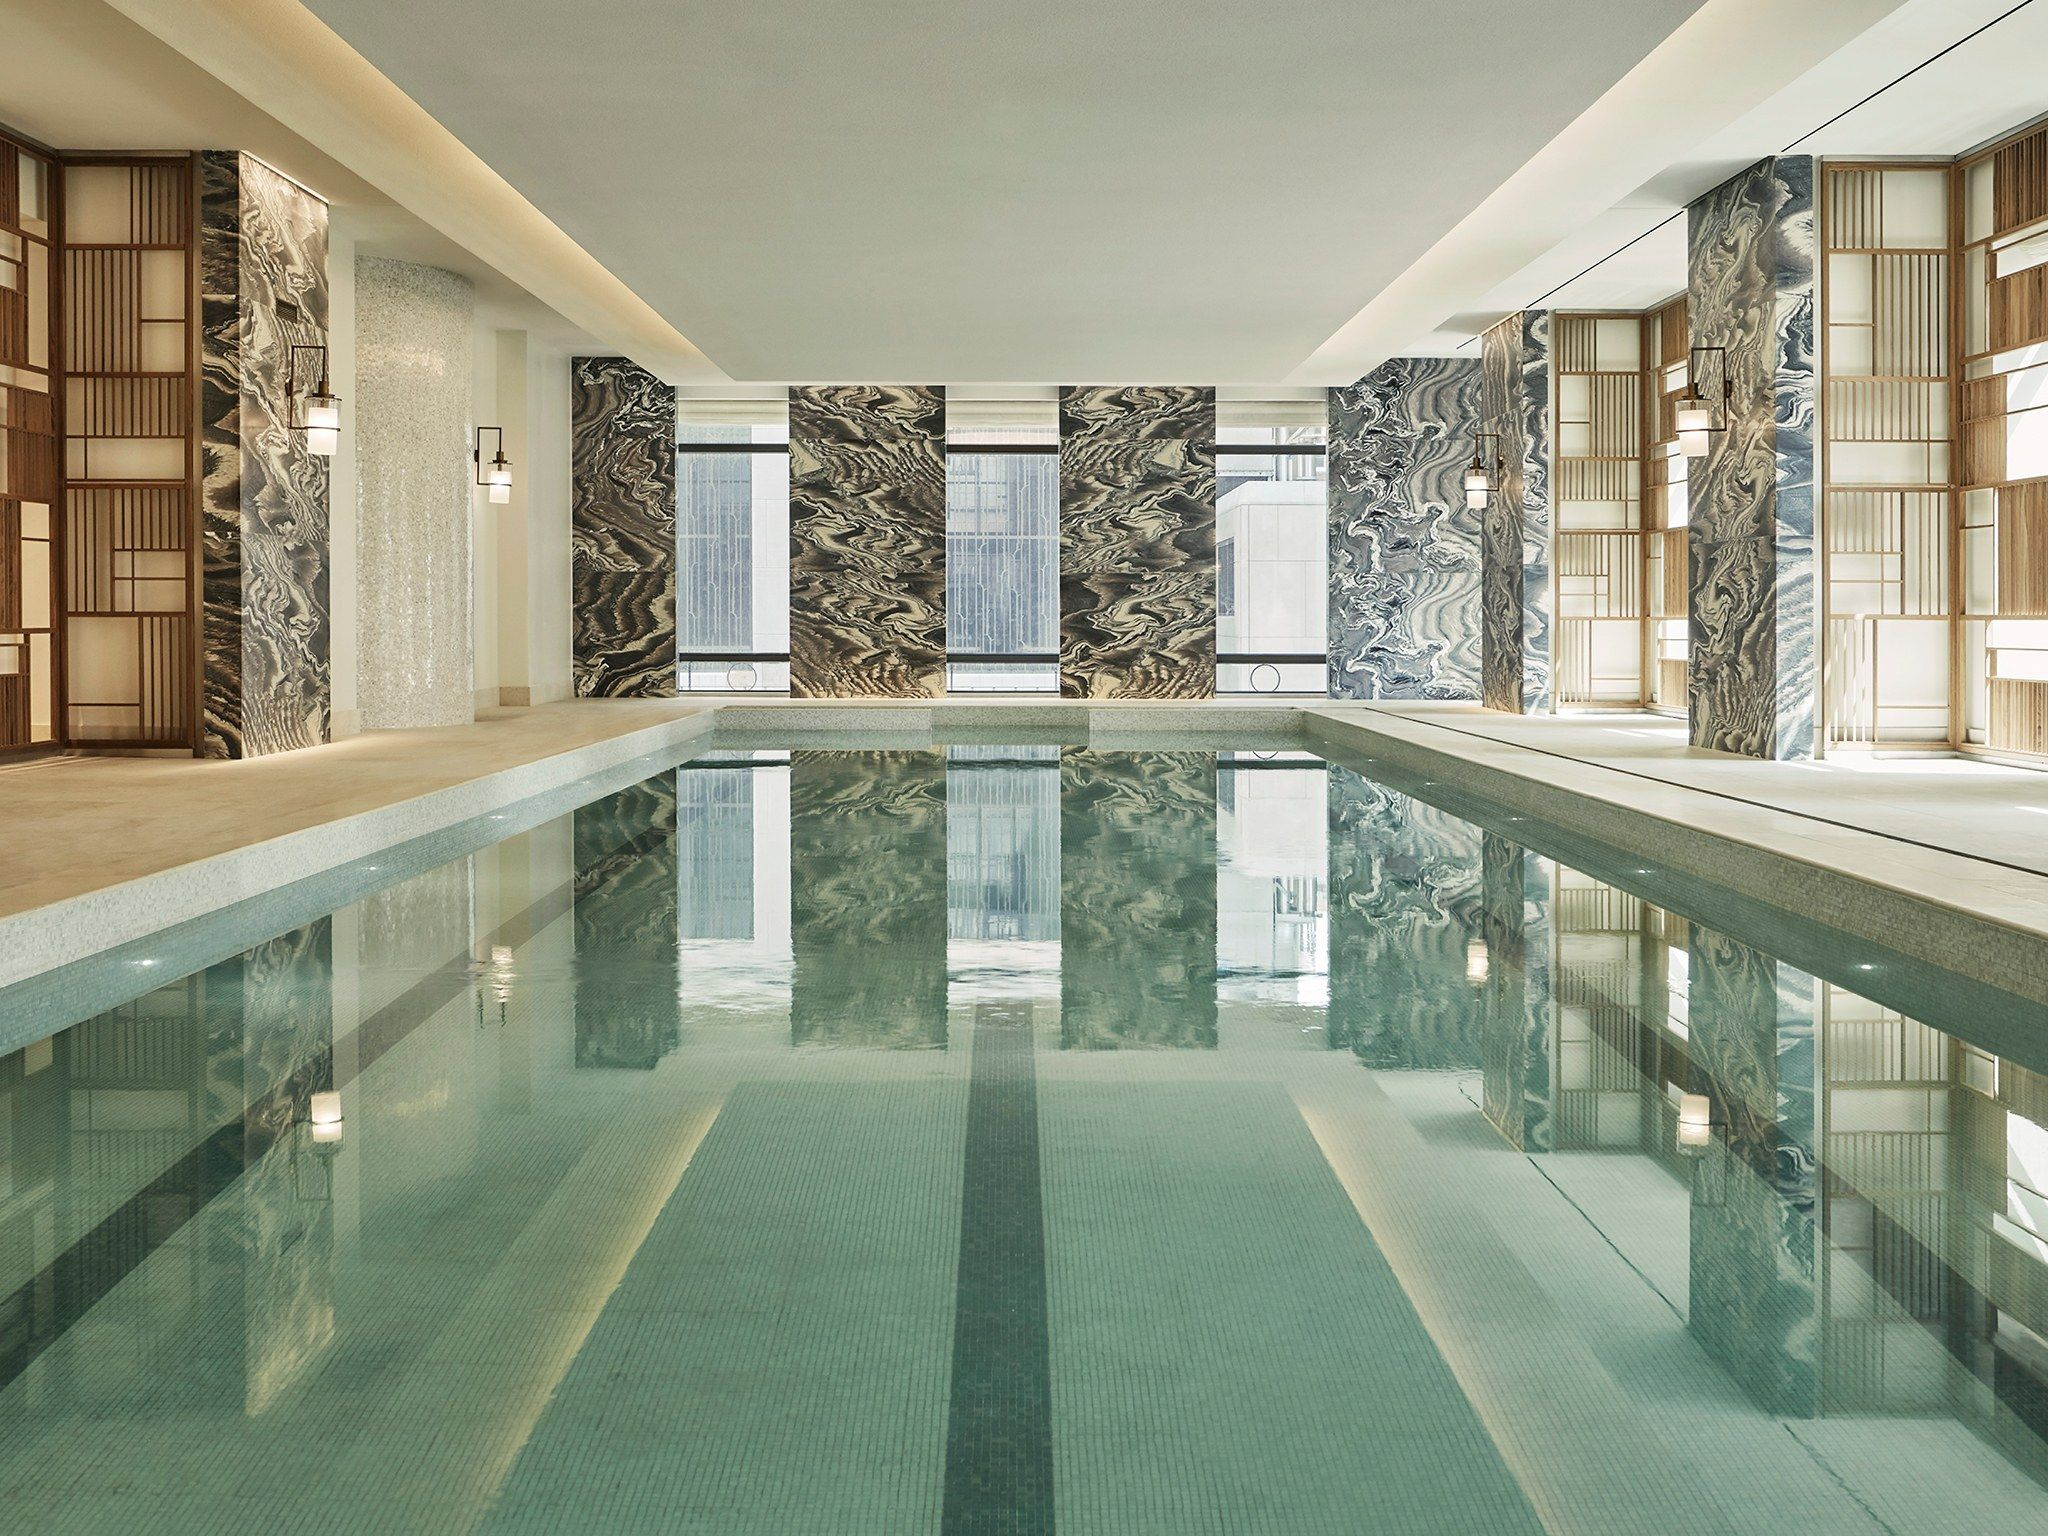 The Best Hotels In New York City Selected By Condé Nast Traveler Readers Four Seasons Hotel City Hotel Nyc Hotels